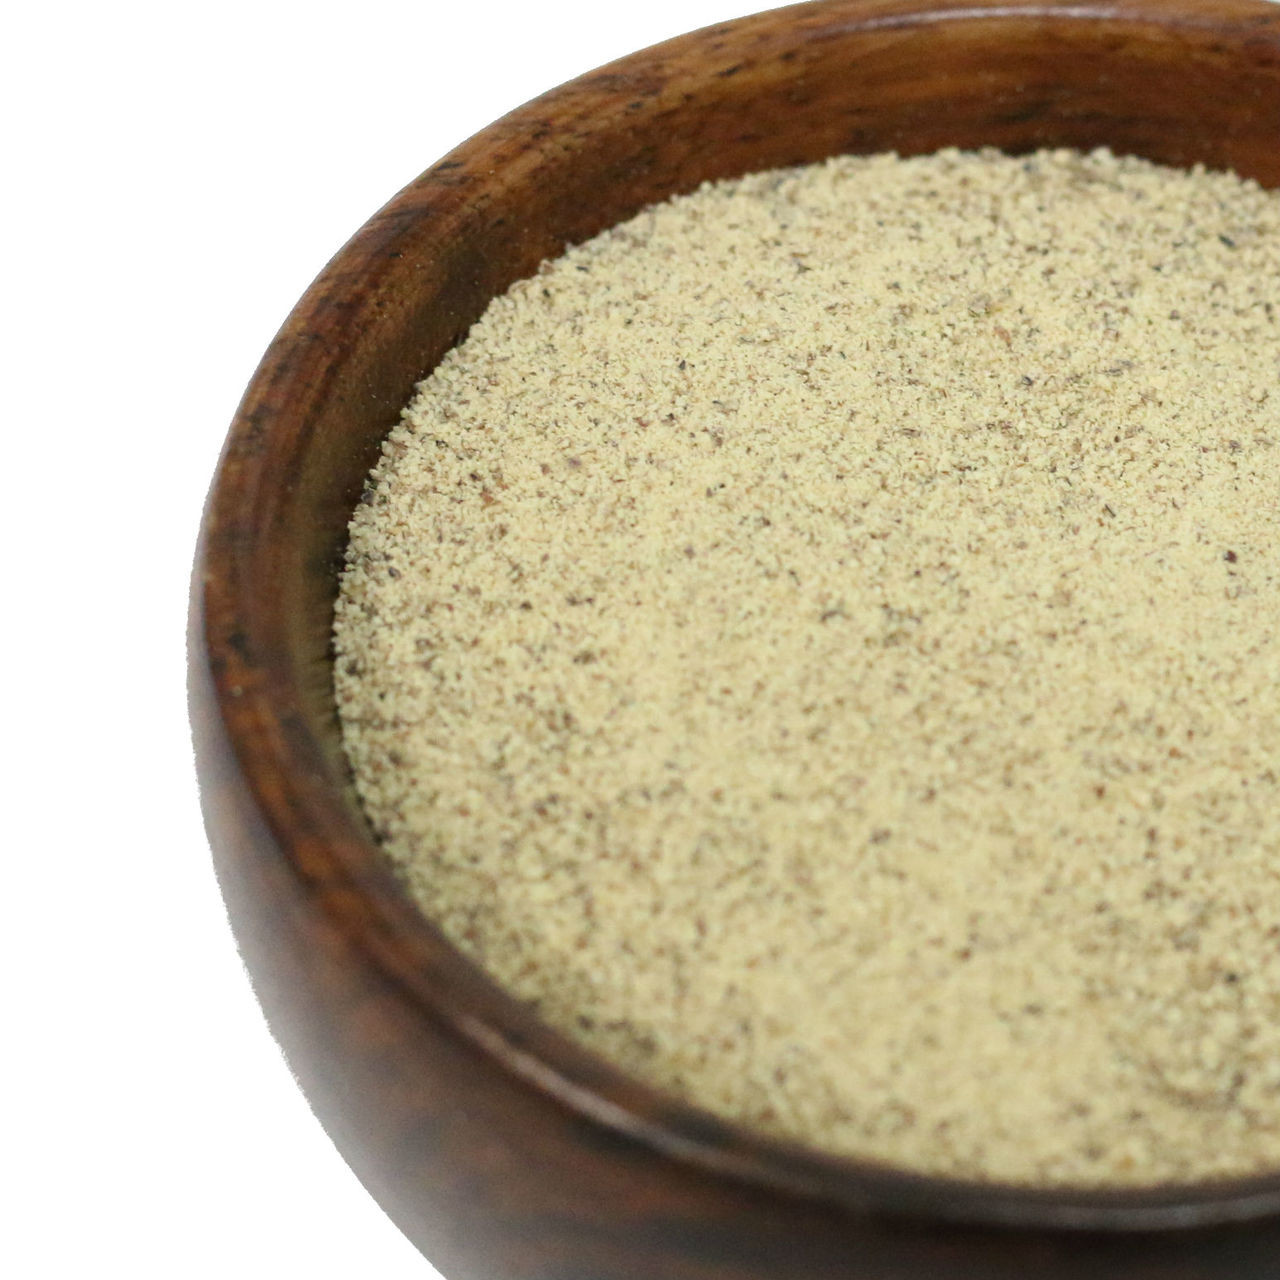 Ground White Pepper is a great alternative to ground black pepper in white or light-colored foods. It has a sharper, spicier flavor than black pepper, with fruity and mildly fermented undertones. Use to season light-colored foods such as cream sauces, white gravies, potato salad and batter coatings for fish and chicken. Excellent for seasoning poultry and fish. Pepper loses its flavor when cooked for long periods of time, so add close to the end of cooking time